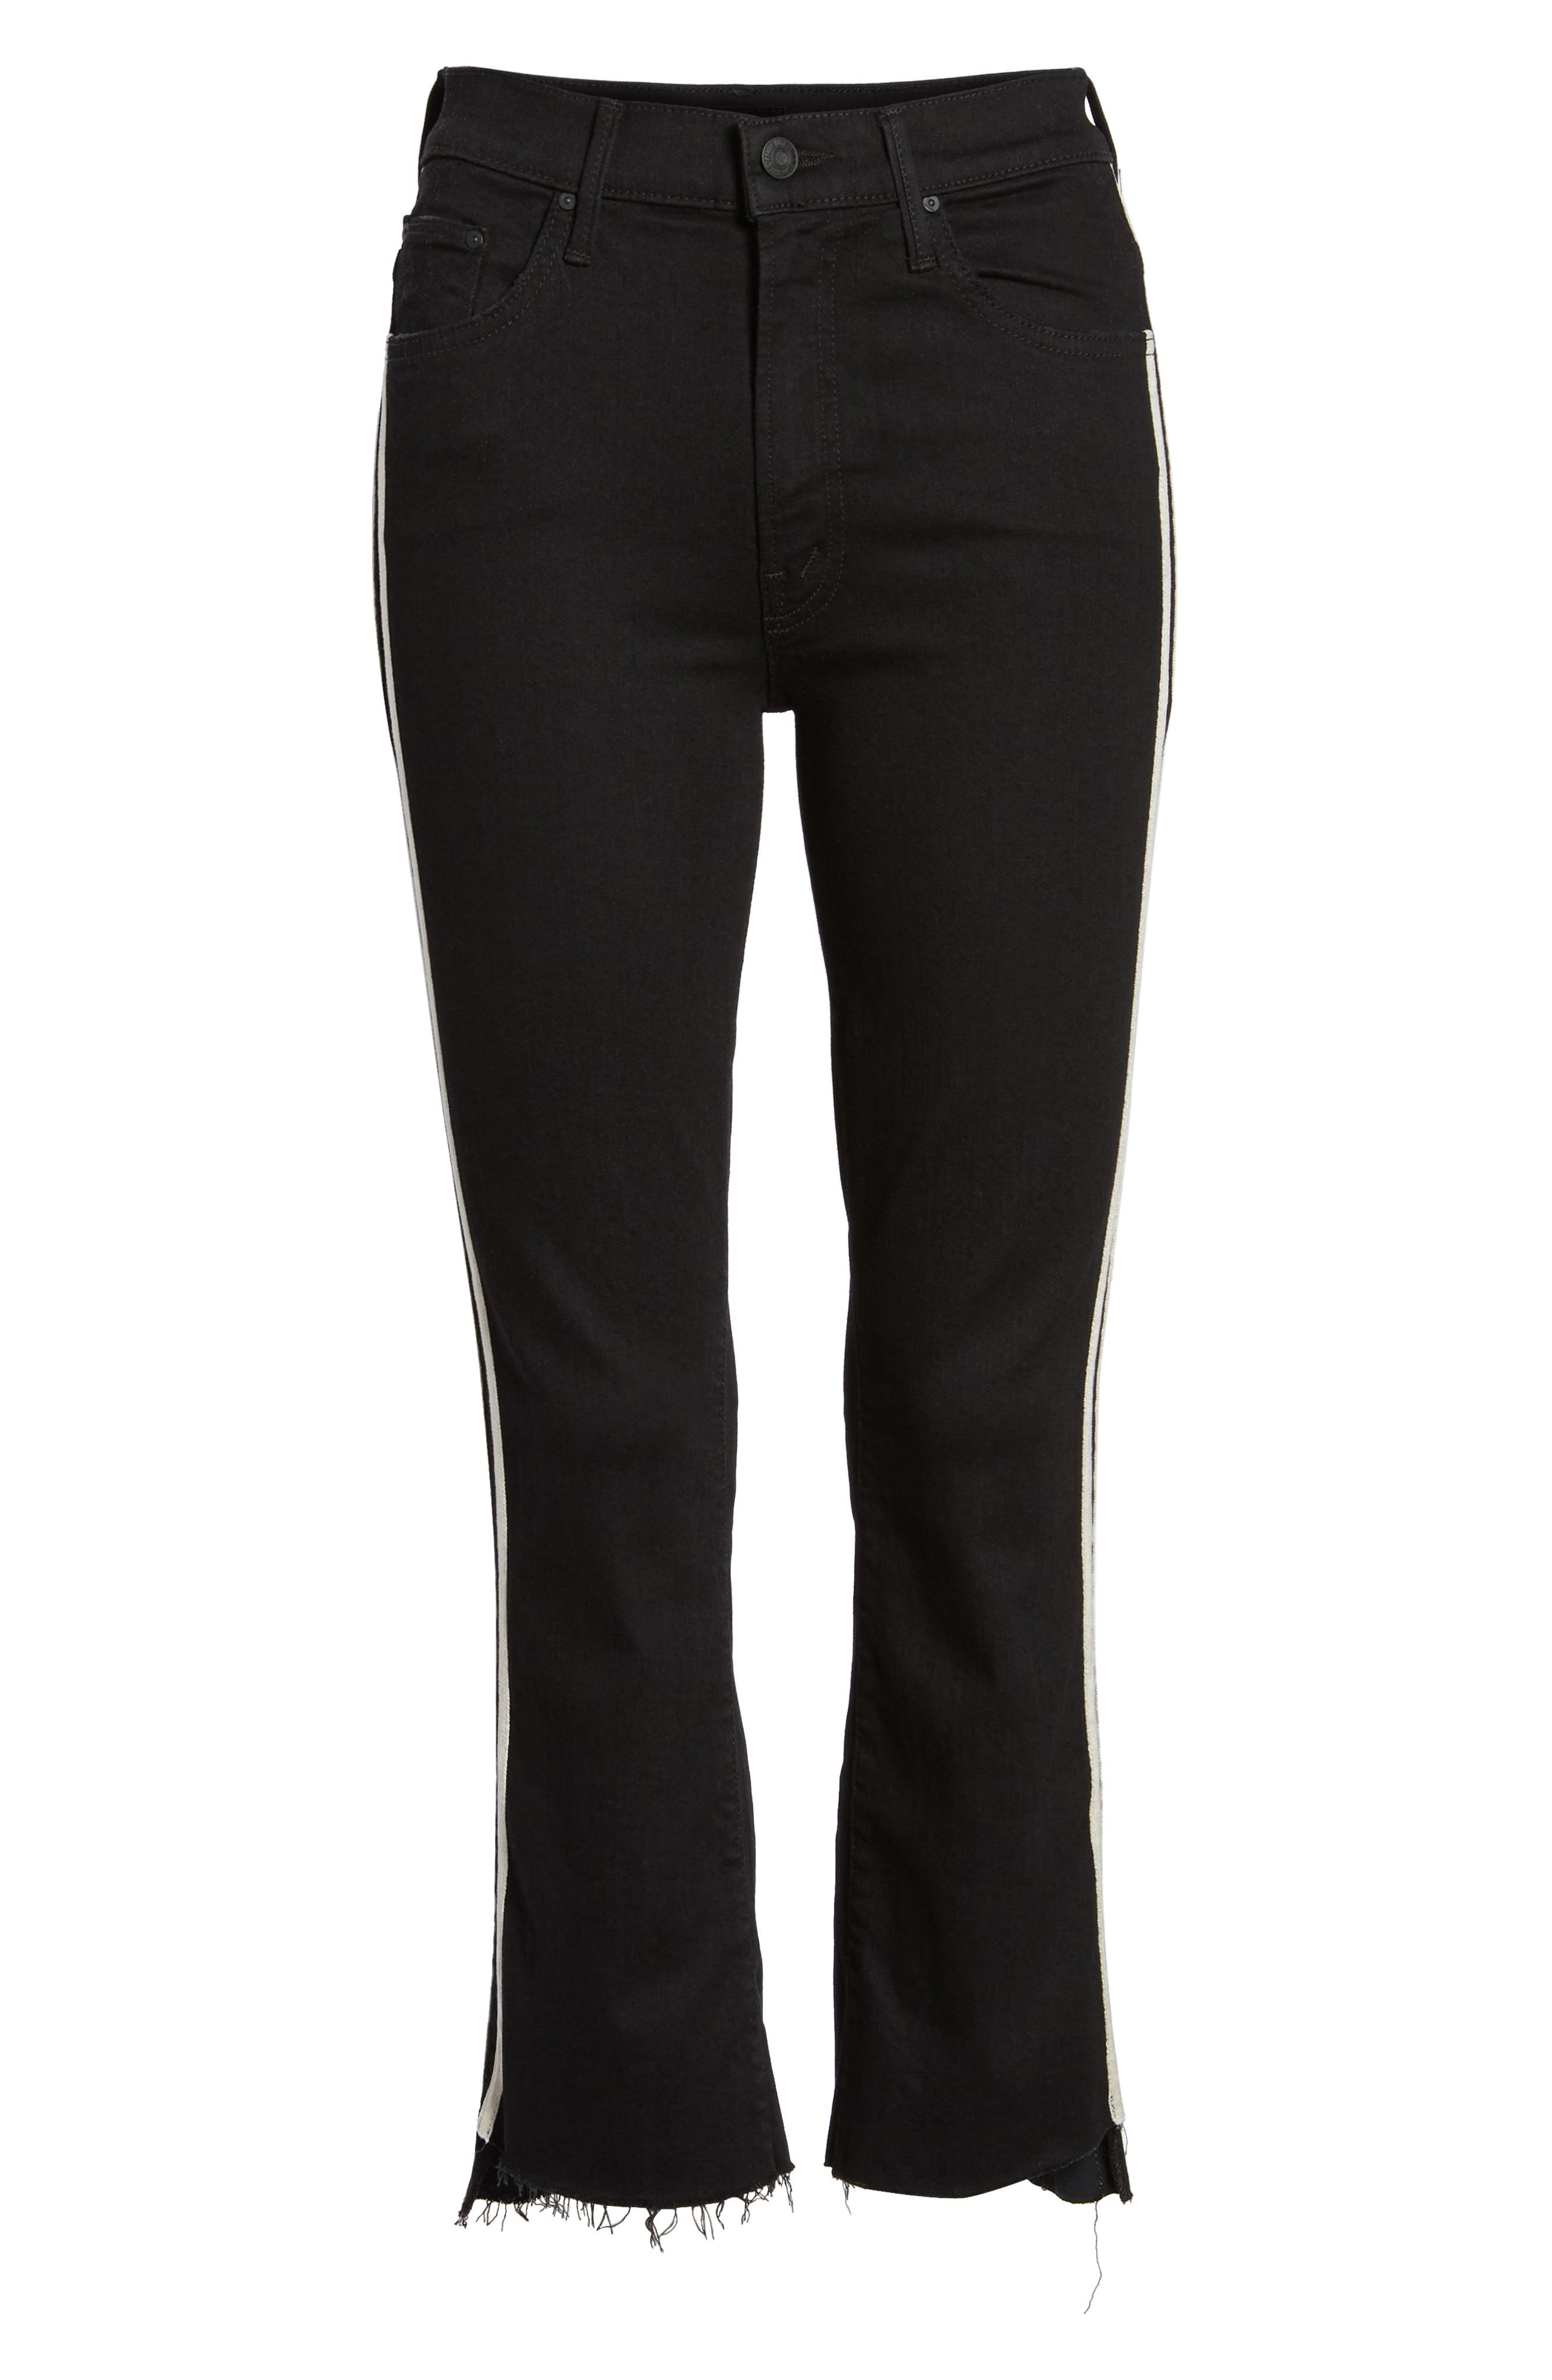 MOTHER, The Insider Crop Jeans, Alternate thumbnail 7, color, GUILTY RACER